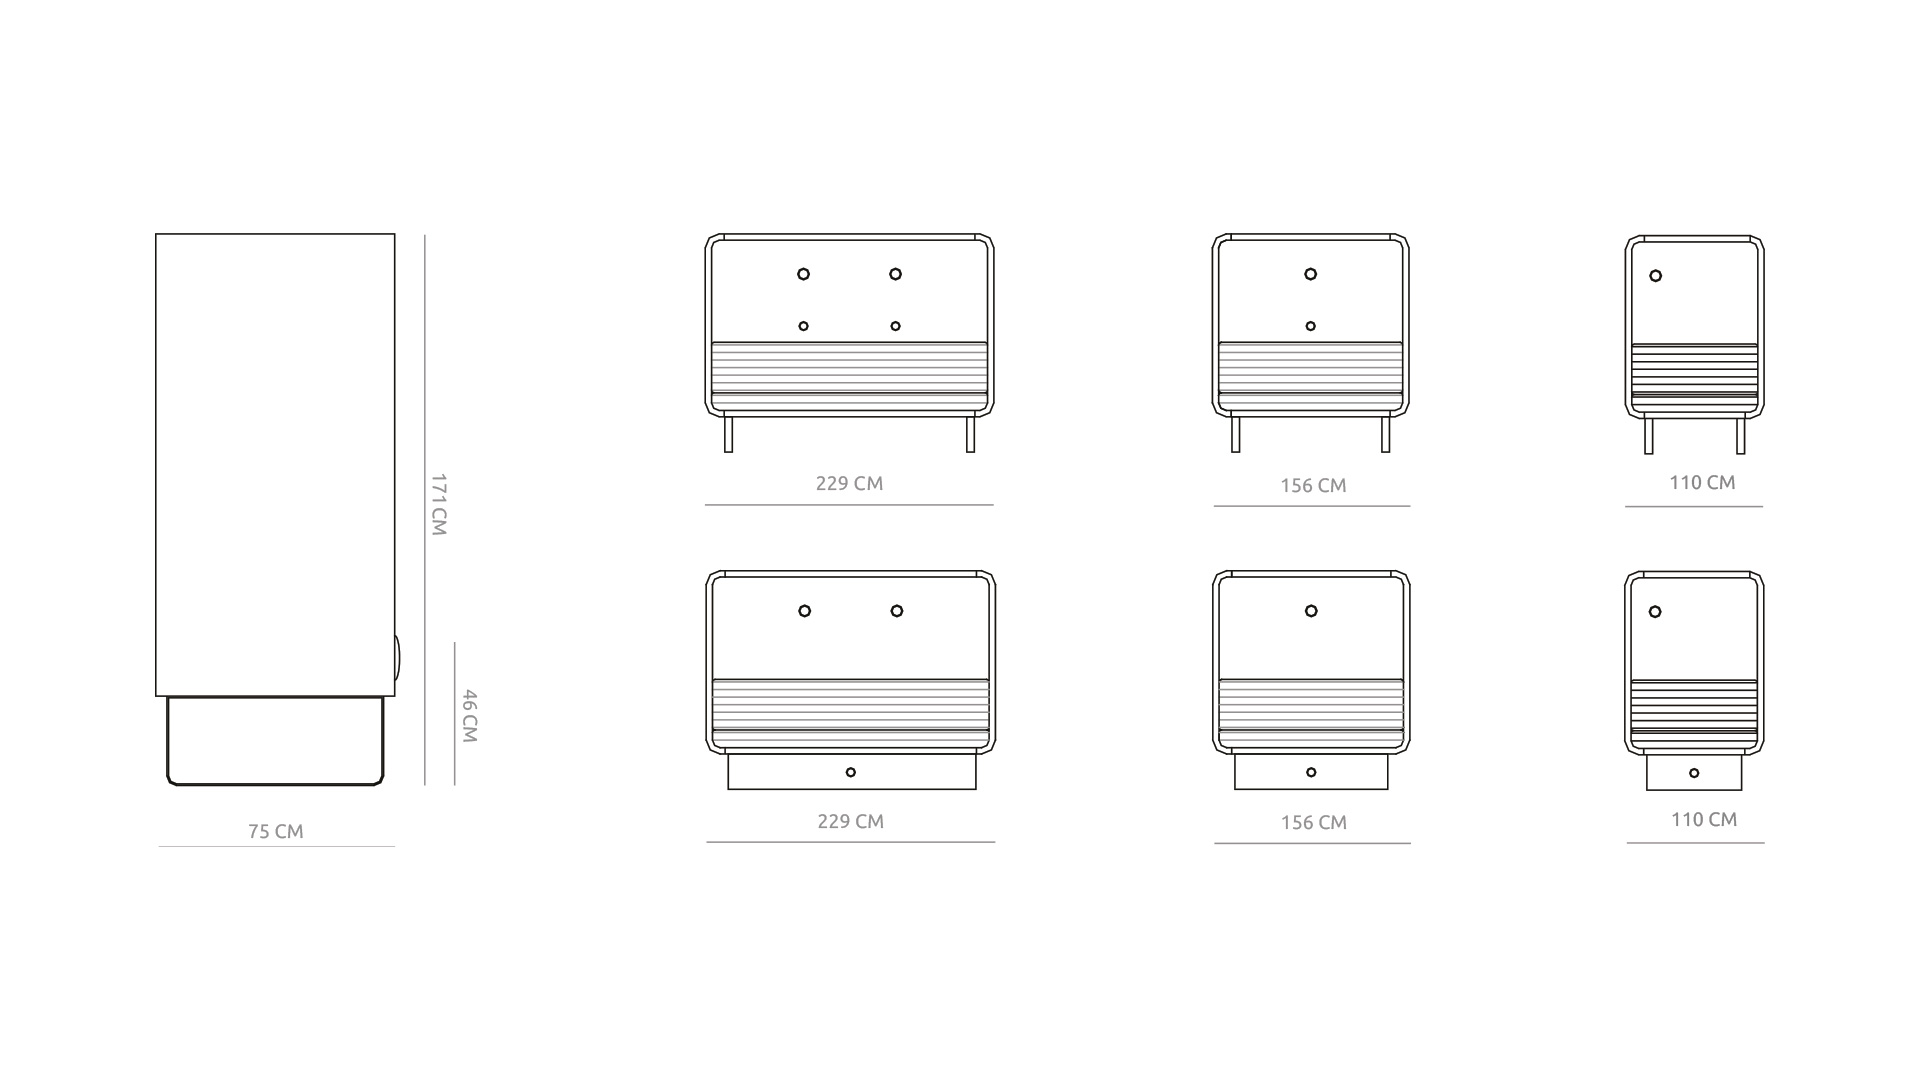 cabin_sofa_measurements.jpg